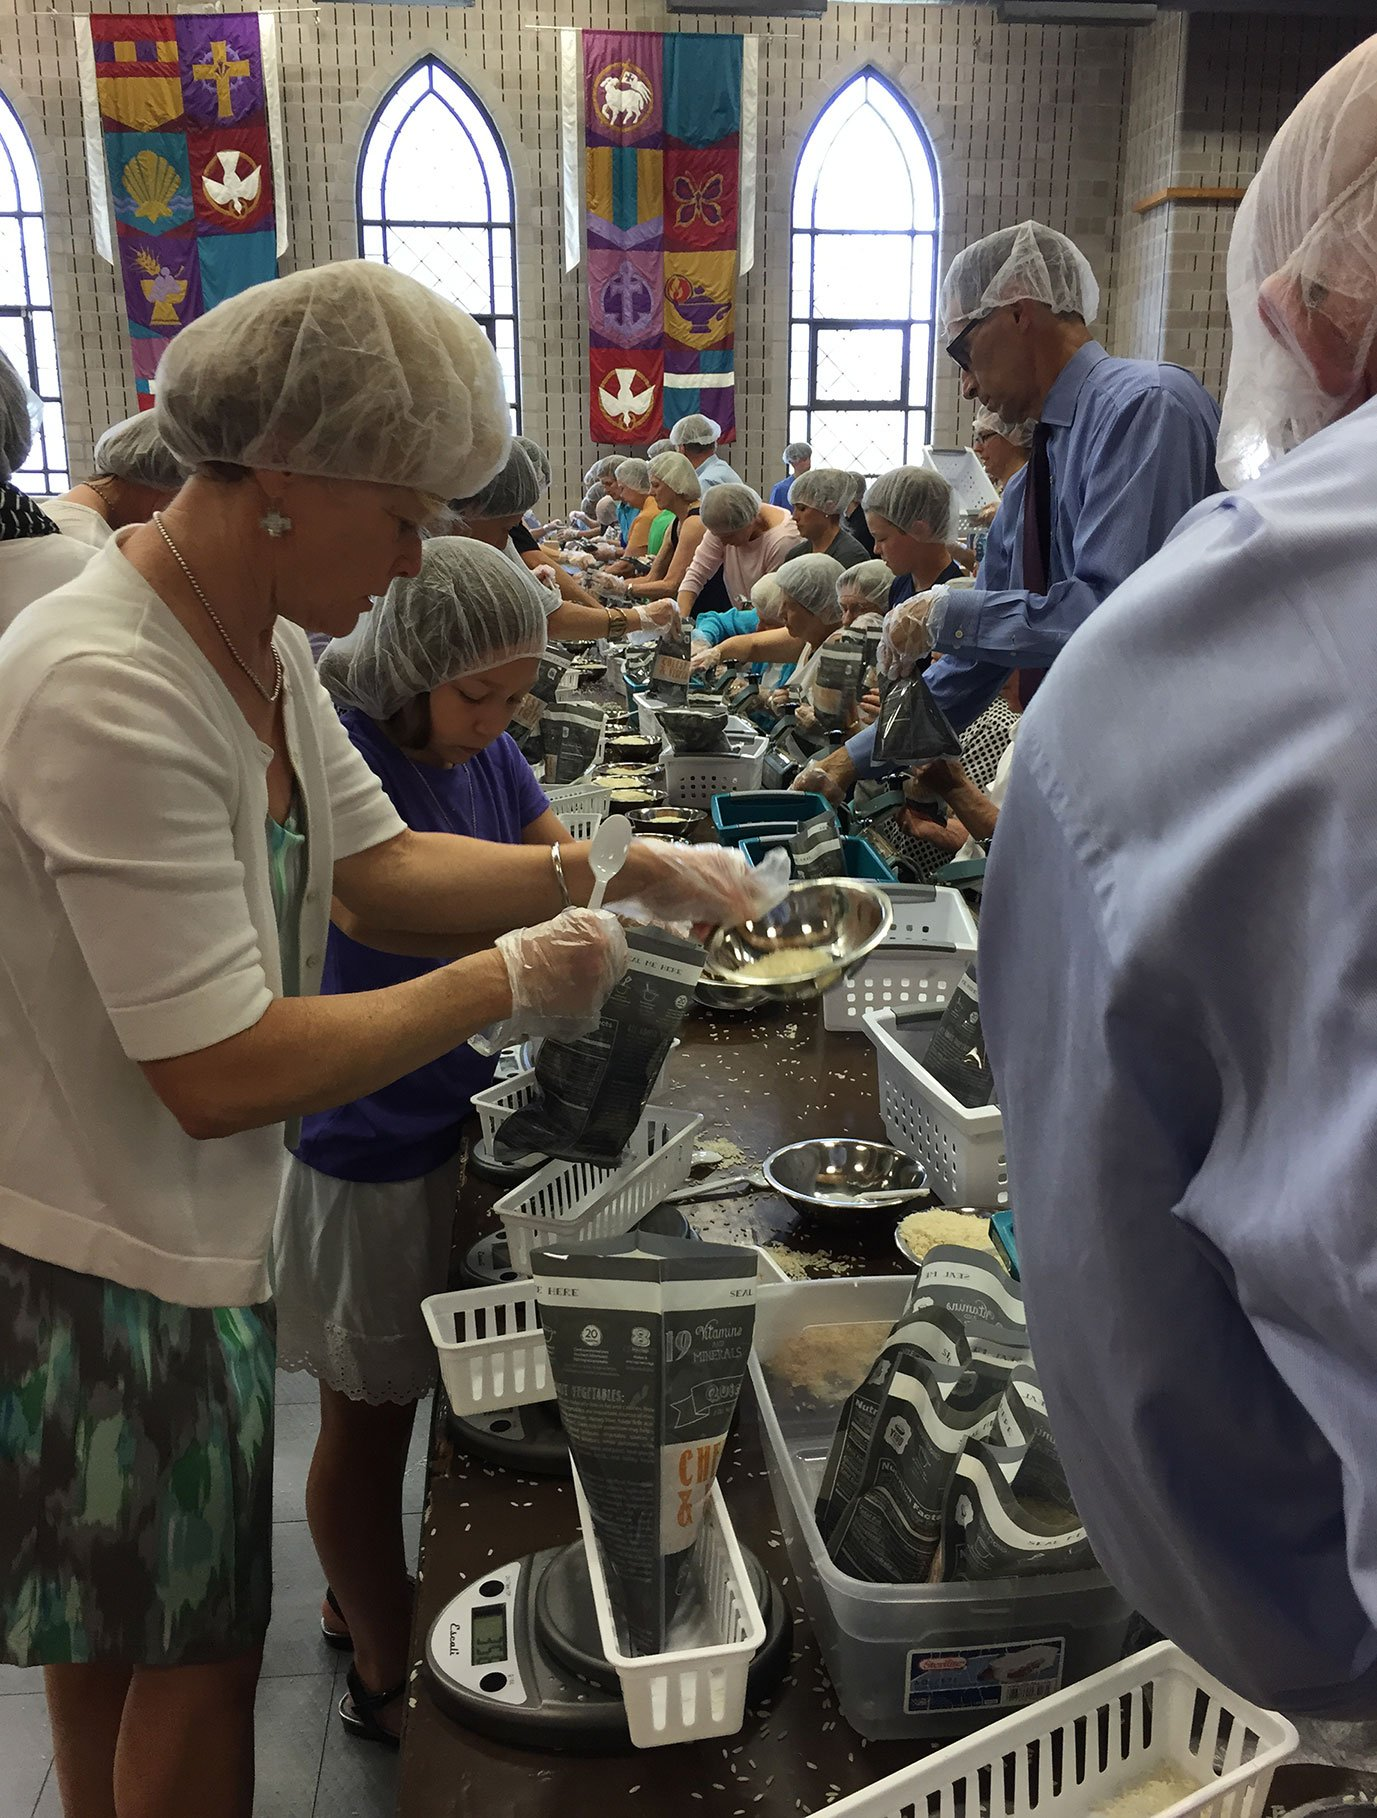 Members of Pulaski Heights United Methodist Church in Little Rock, Ark., pack meals for hungry families in the state. The church is among the congregations growing in worship attendance. Photo courtesy of Andrea Wymes